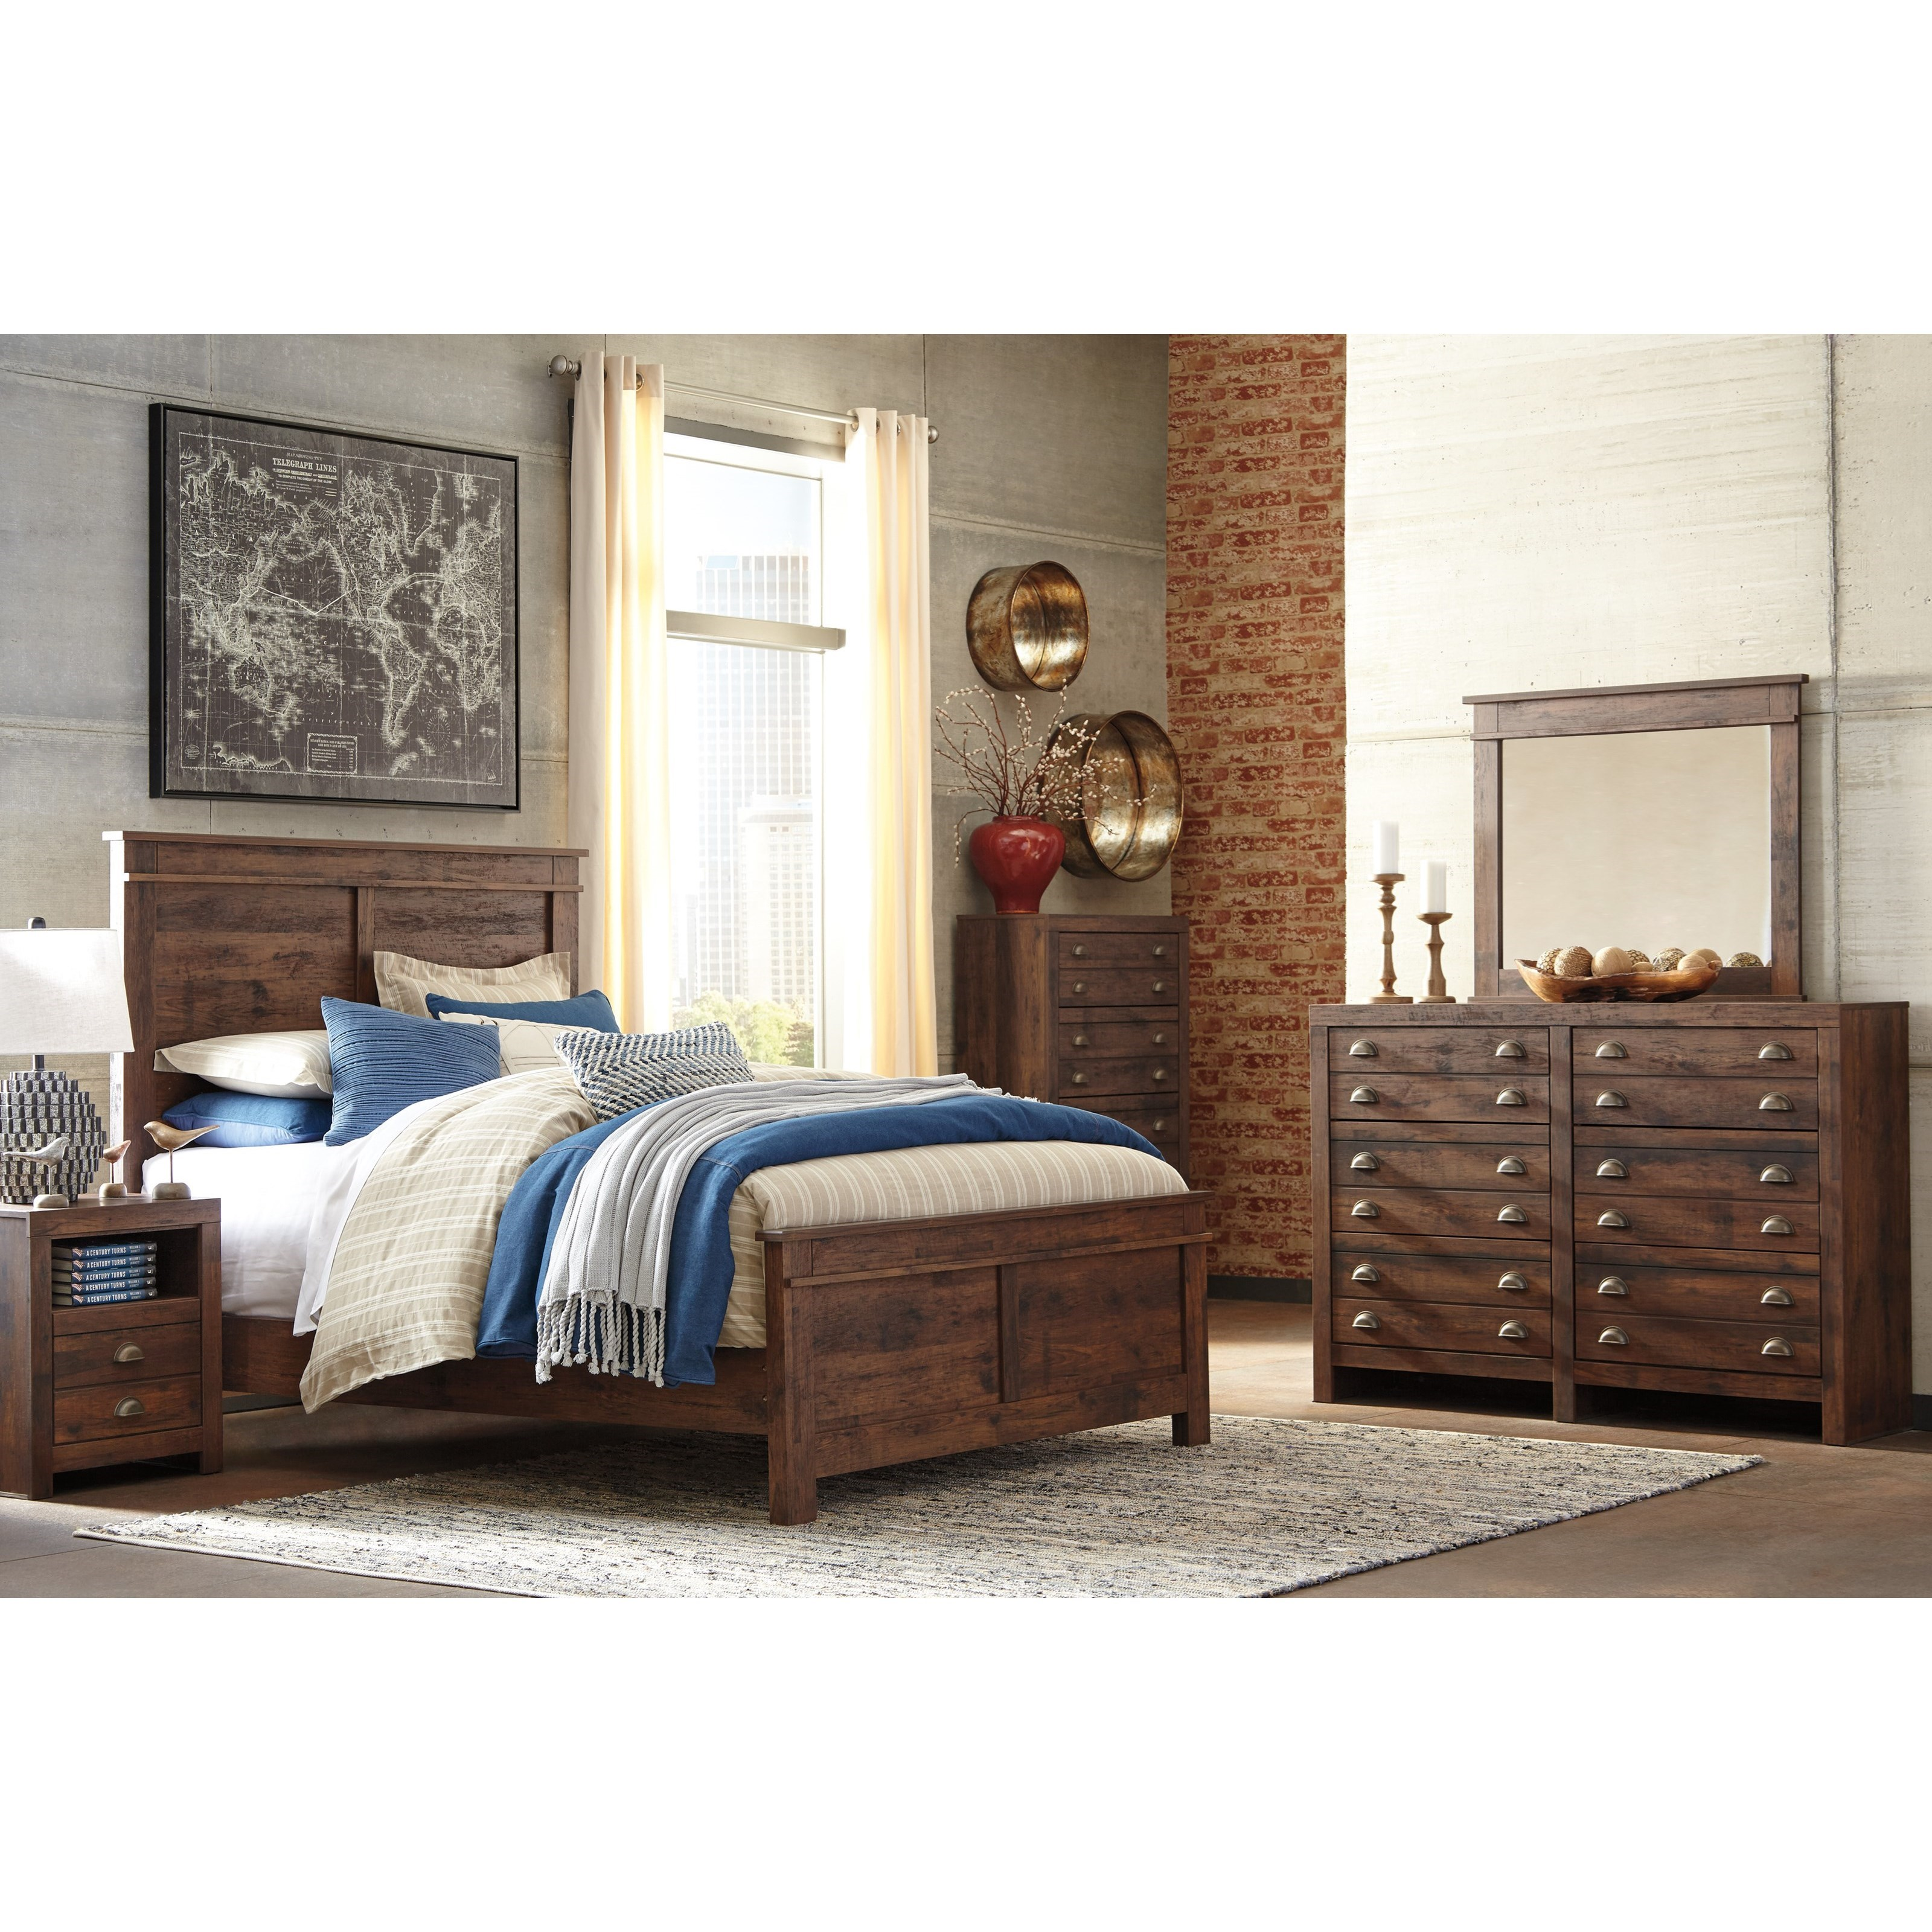 Buy ashley furniture allymore poster bedroom set buy ashley furniture prattfield panel bedroom Ashley home furniture bedroom sets